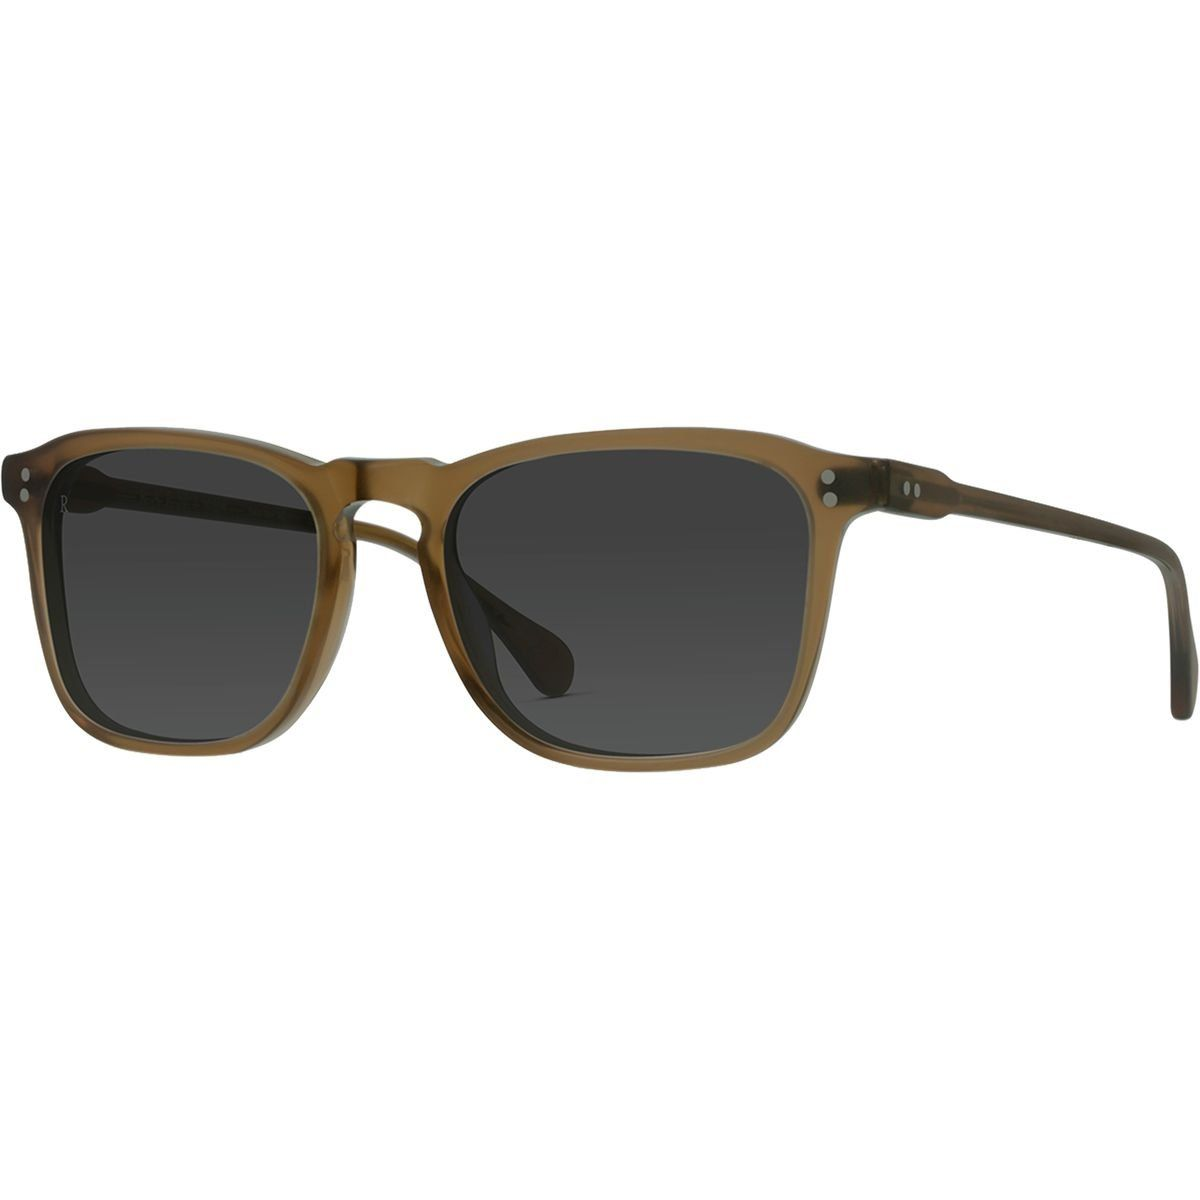 86402012d8 RAEN Optics Unisex Wiley Kelp Sunglasses. Made in USA or Imported ...